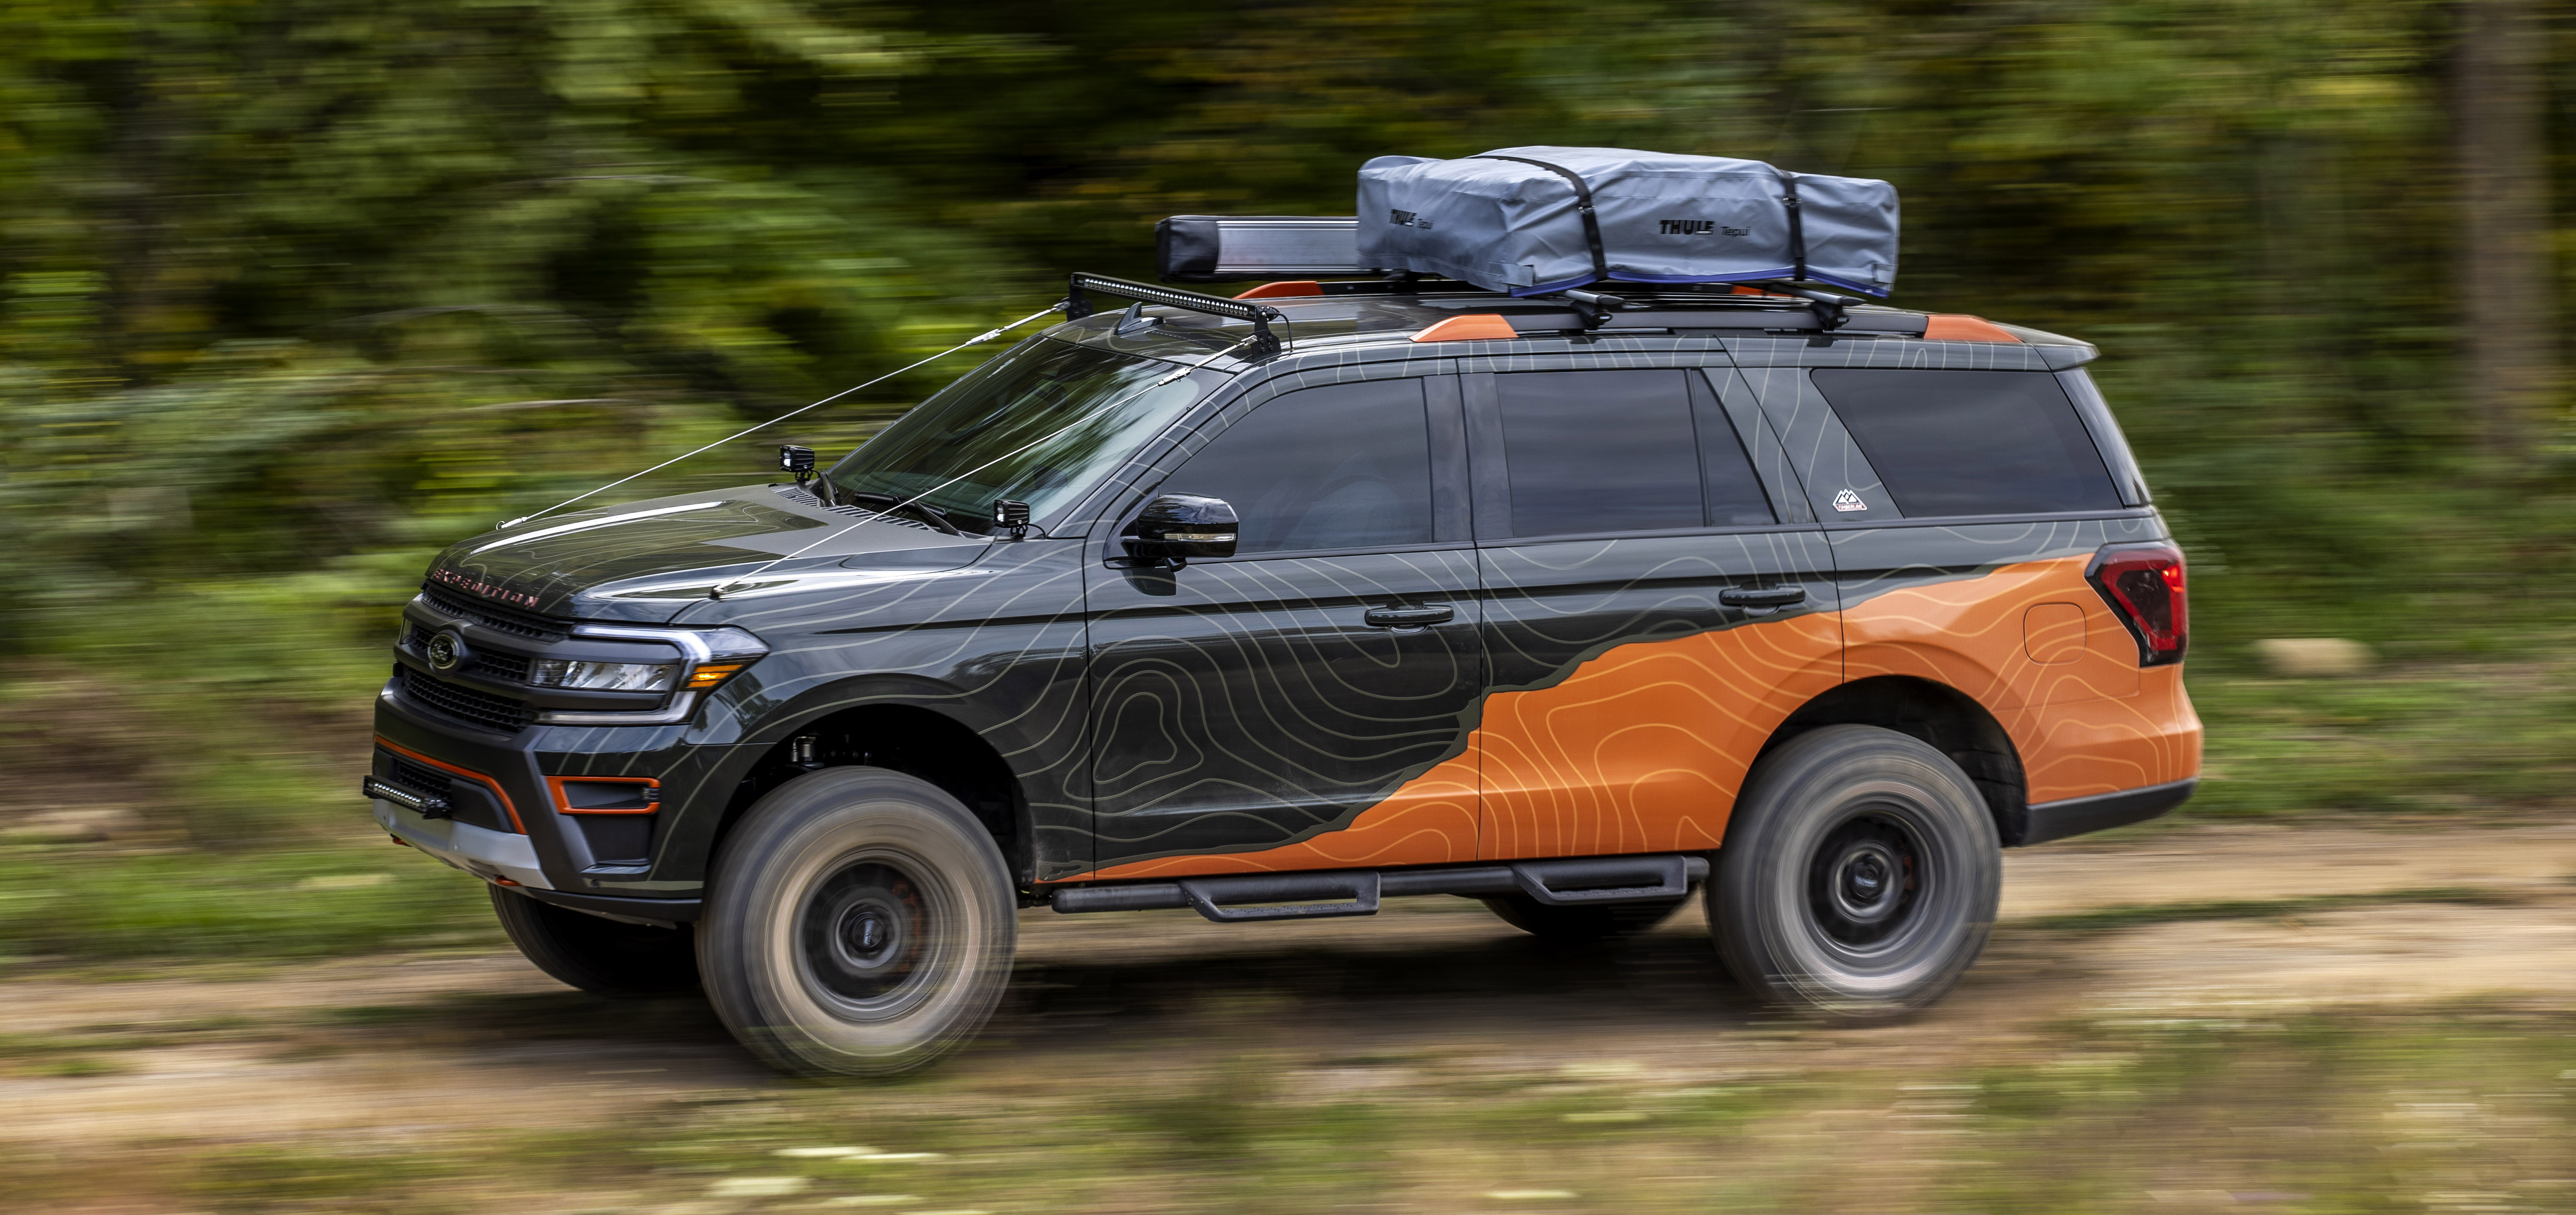 Up high, the Off-Grid concept packs a pair of Thule crossbars, a Thule Tepui rooftop tent and a 180-degree awning from Overland Vehicle Systems